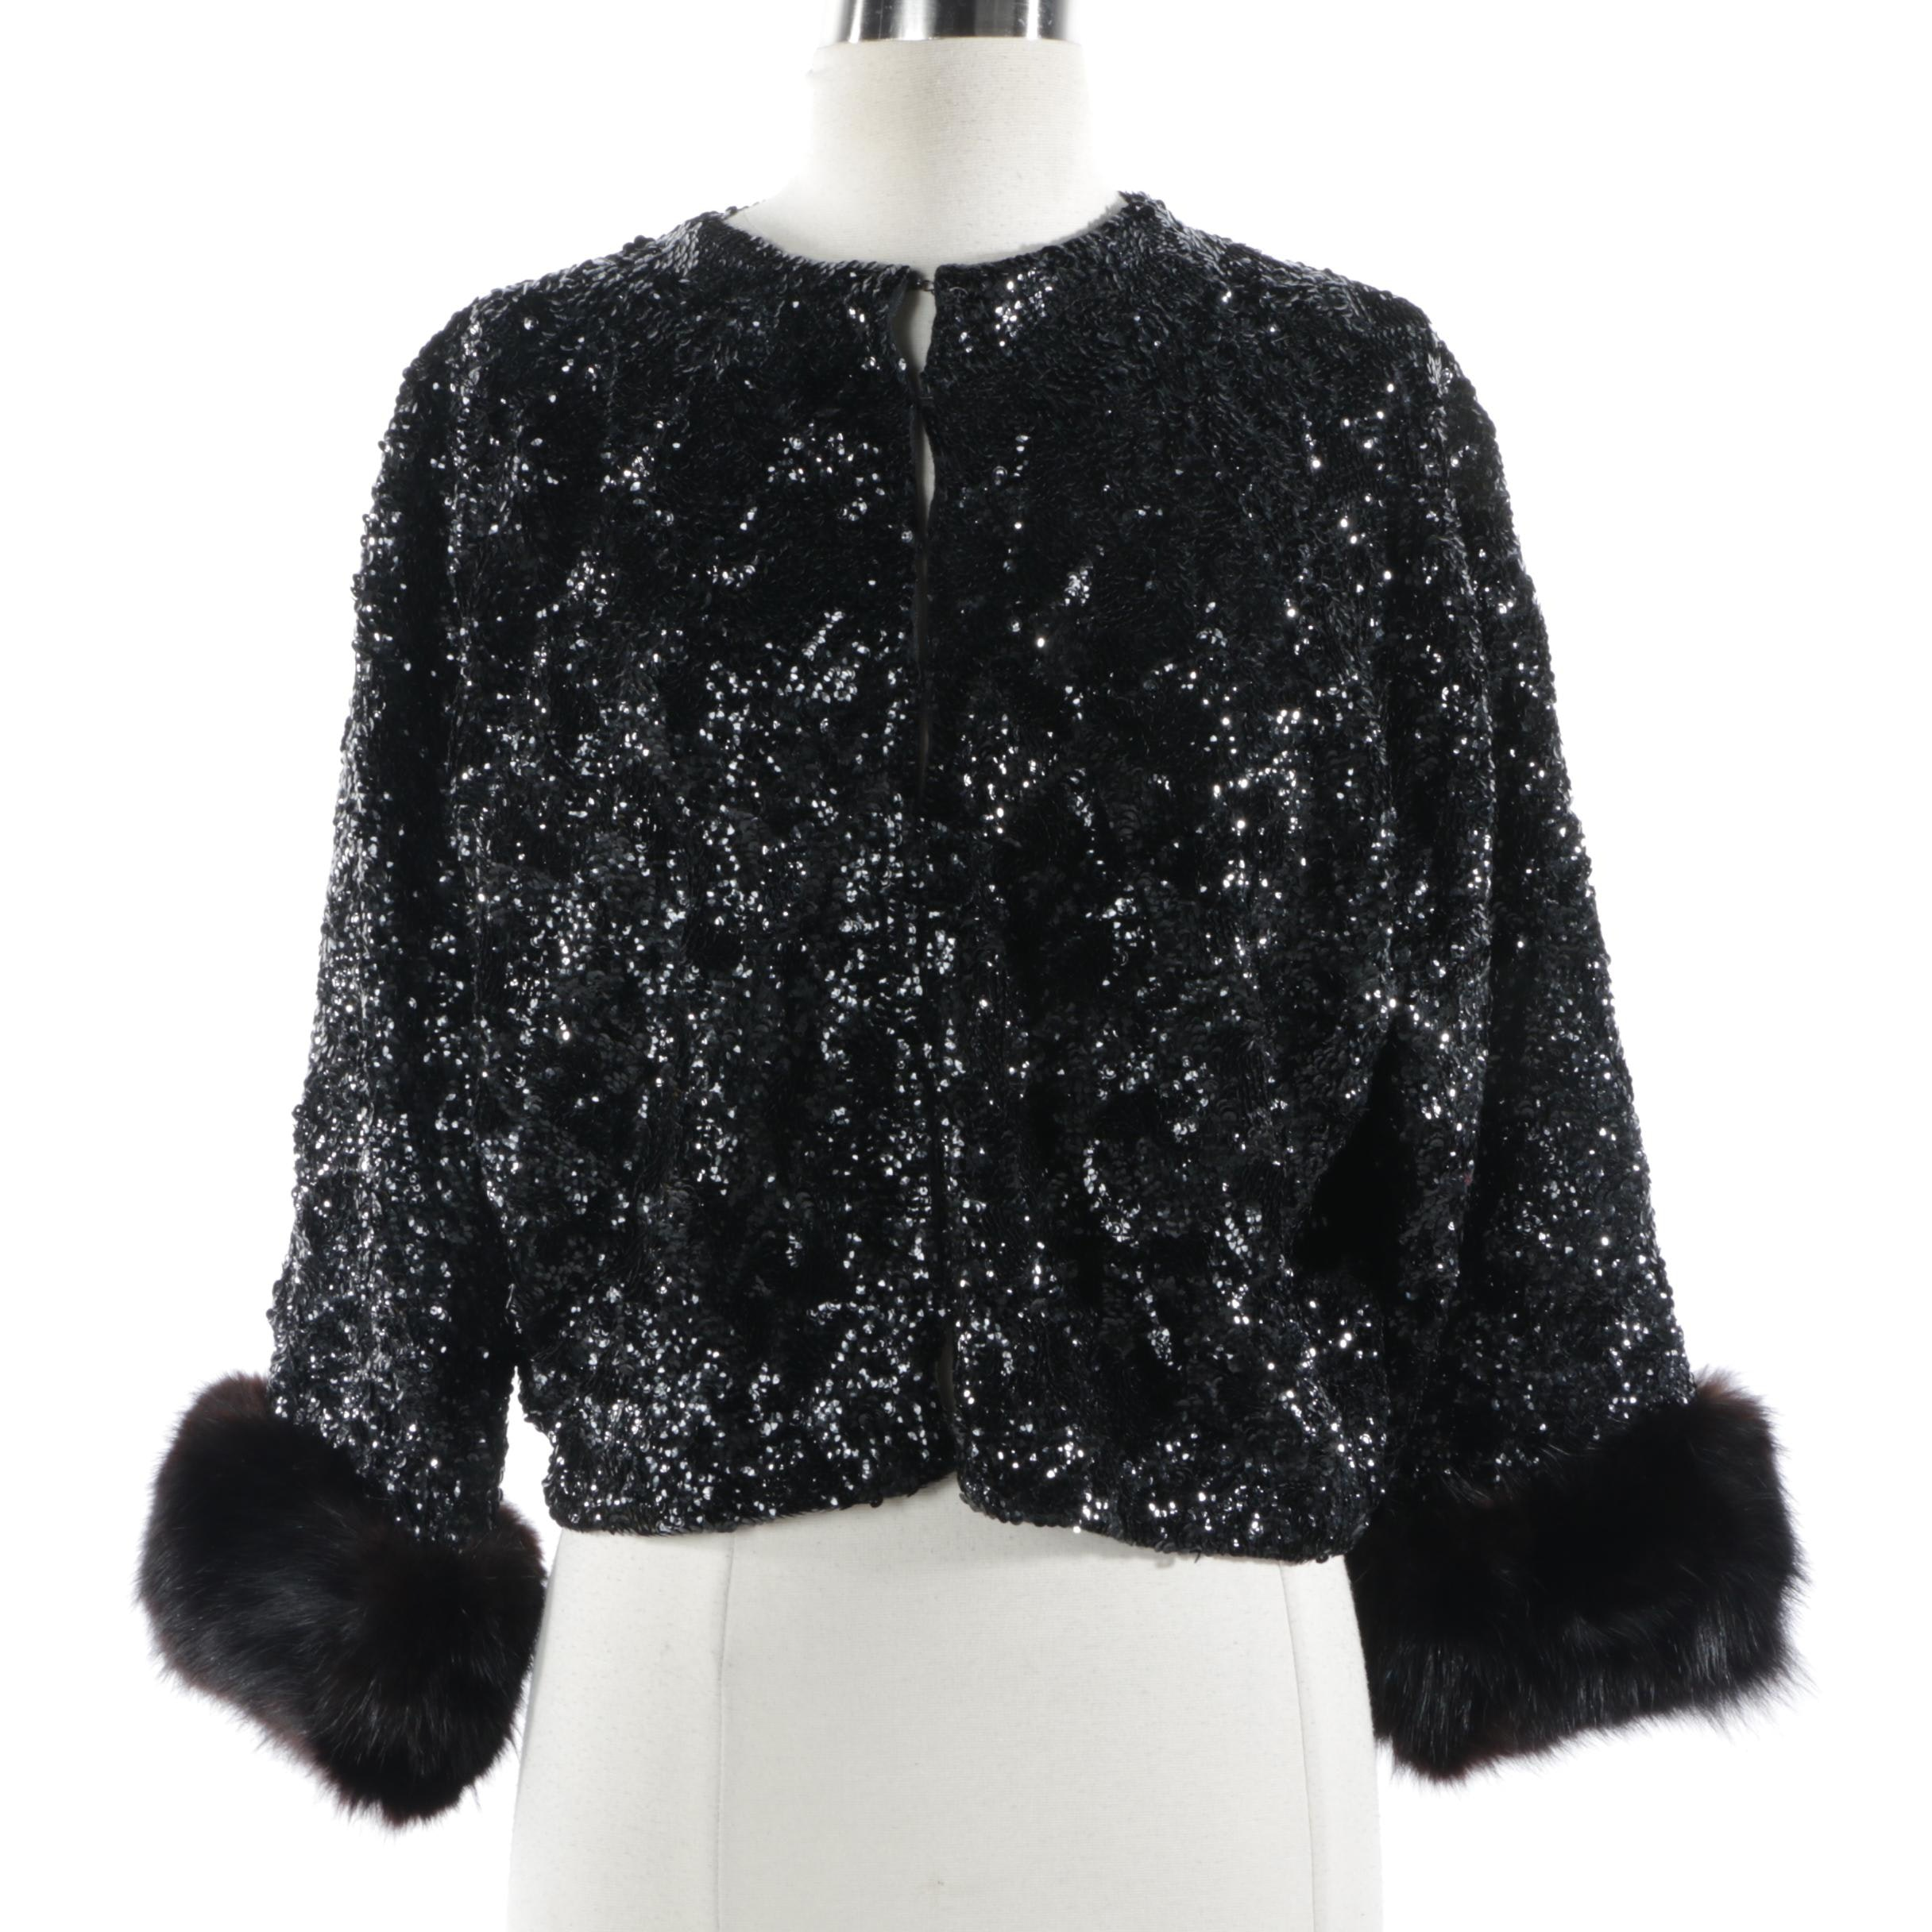 Women's Vintage Black Sequin Evening Jacket with Fox Fur Sleeve Cuffs